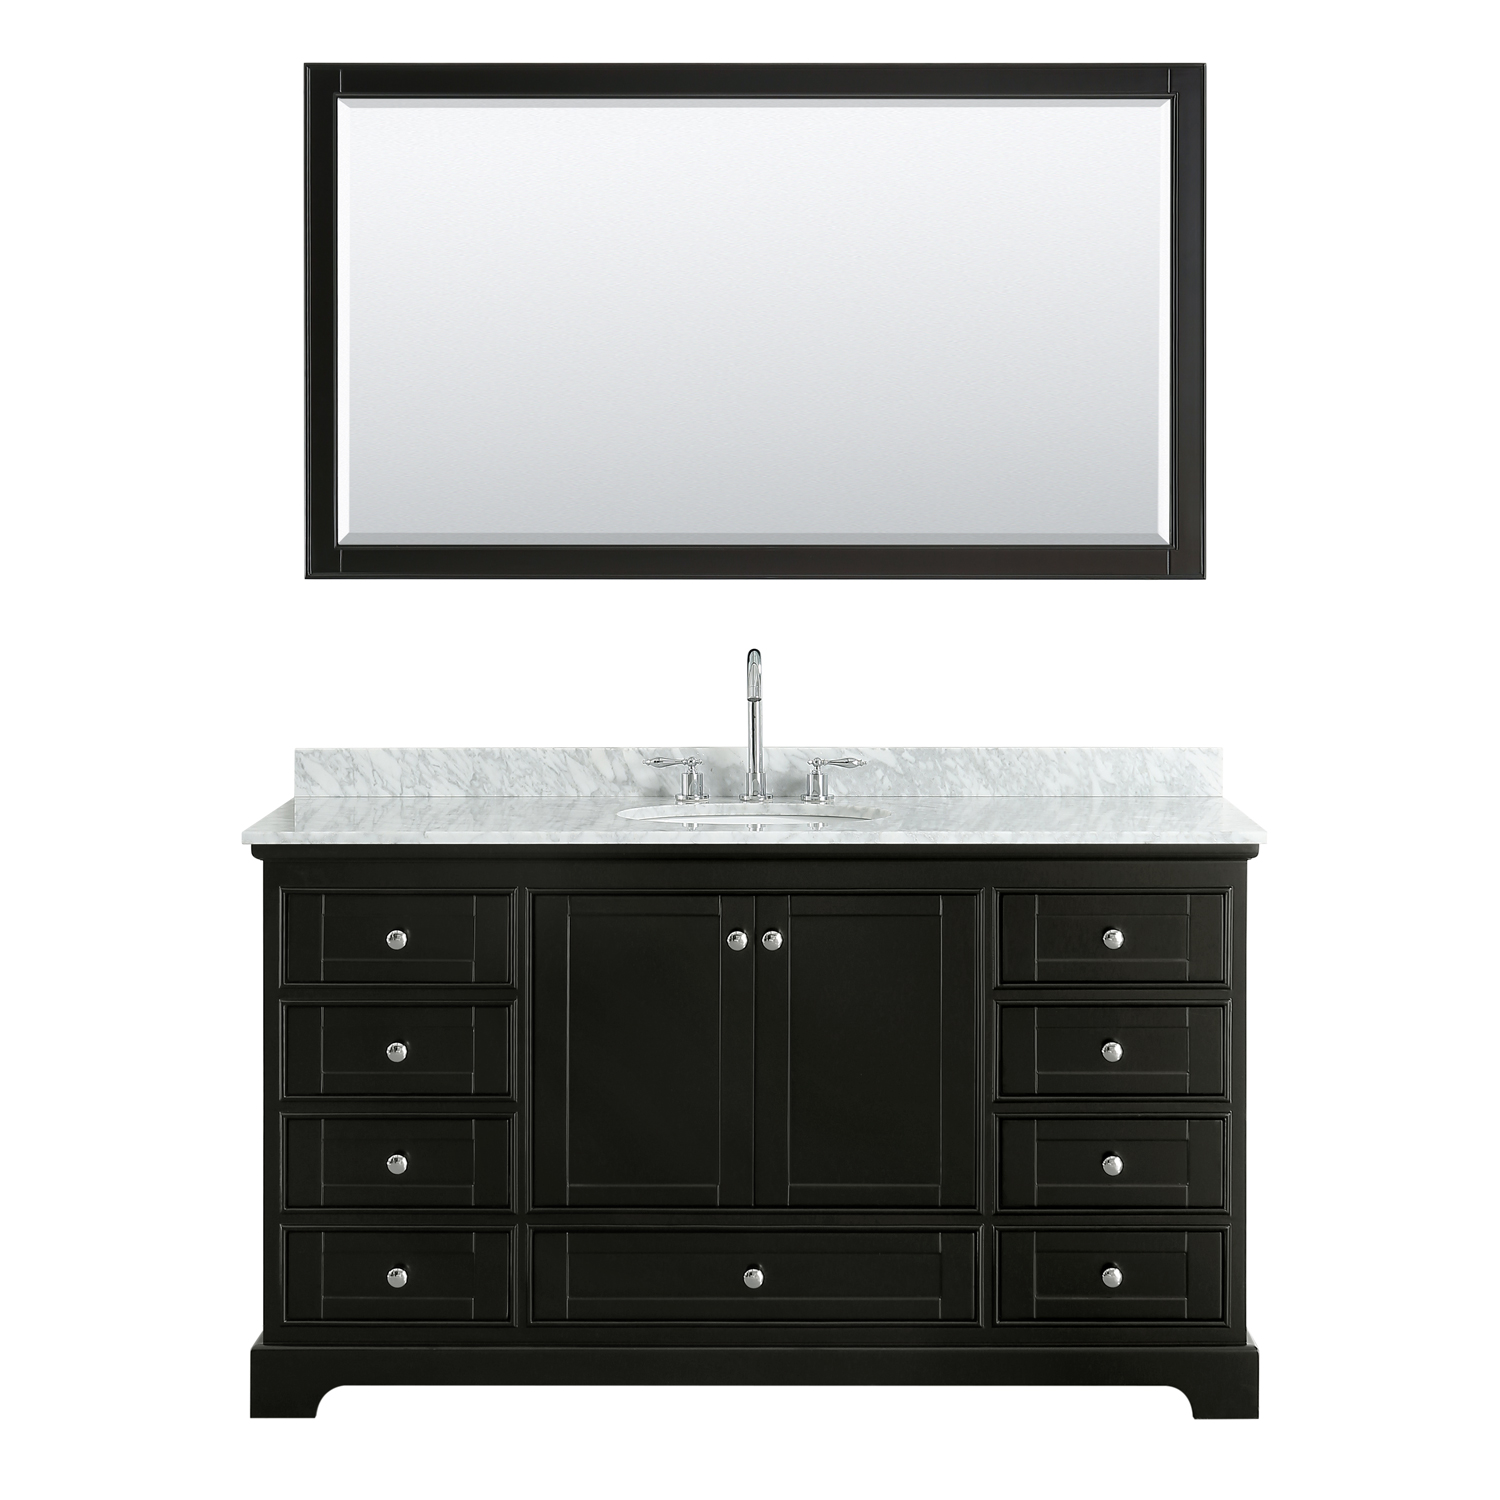 """60"""" Single Bathroom Vanity in White Carrara Marble Countertop with Undermount Porcelain Sink, Medicine Cabinet, Mirror and Color Options"""